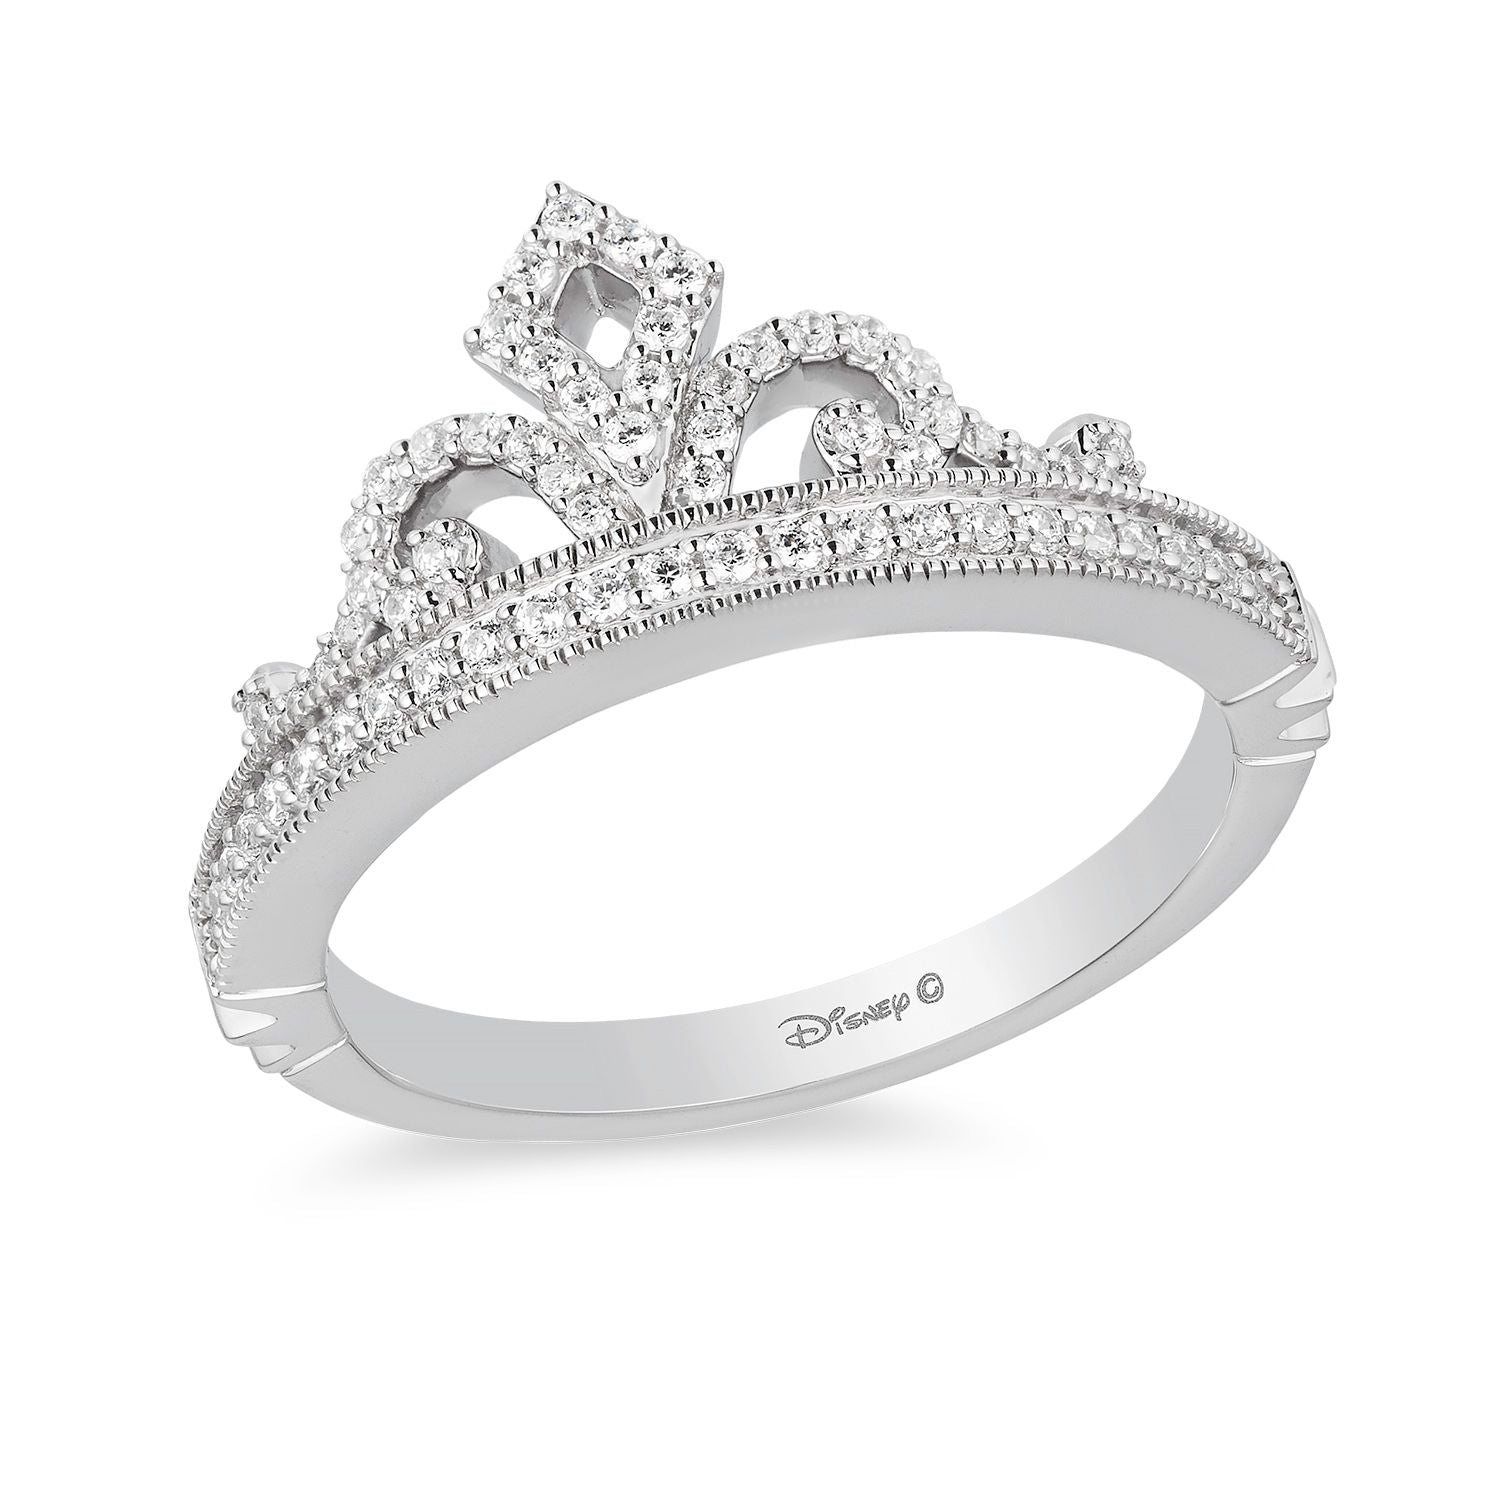 enchanted_disney-majestic-princess_tiara_ring-sterling_silver_1/4CTTW_1